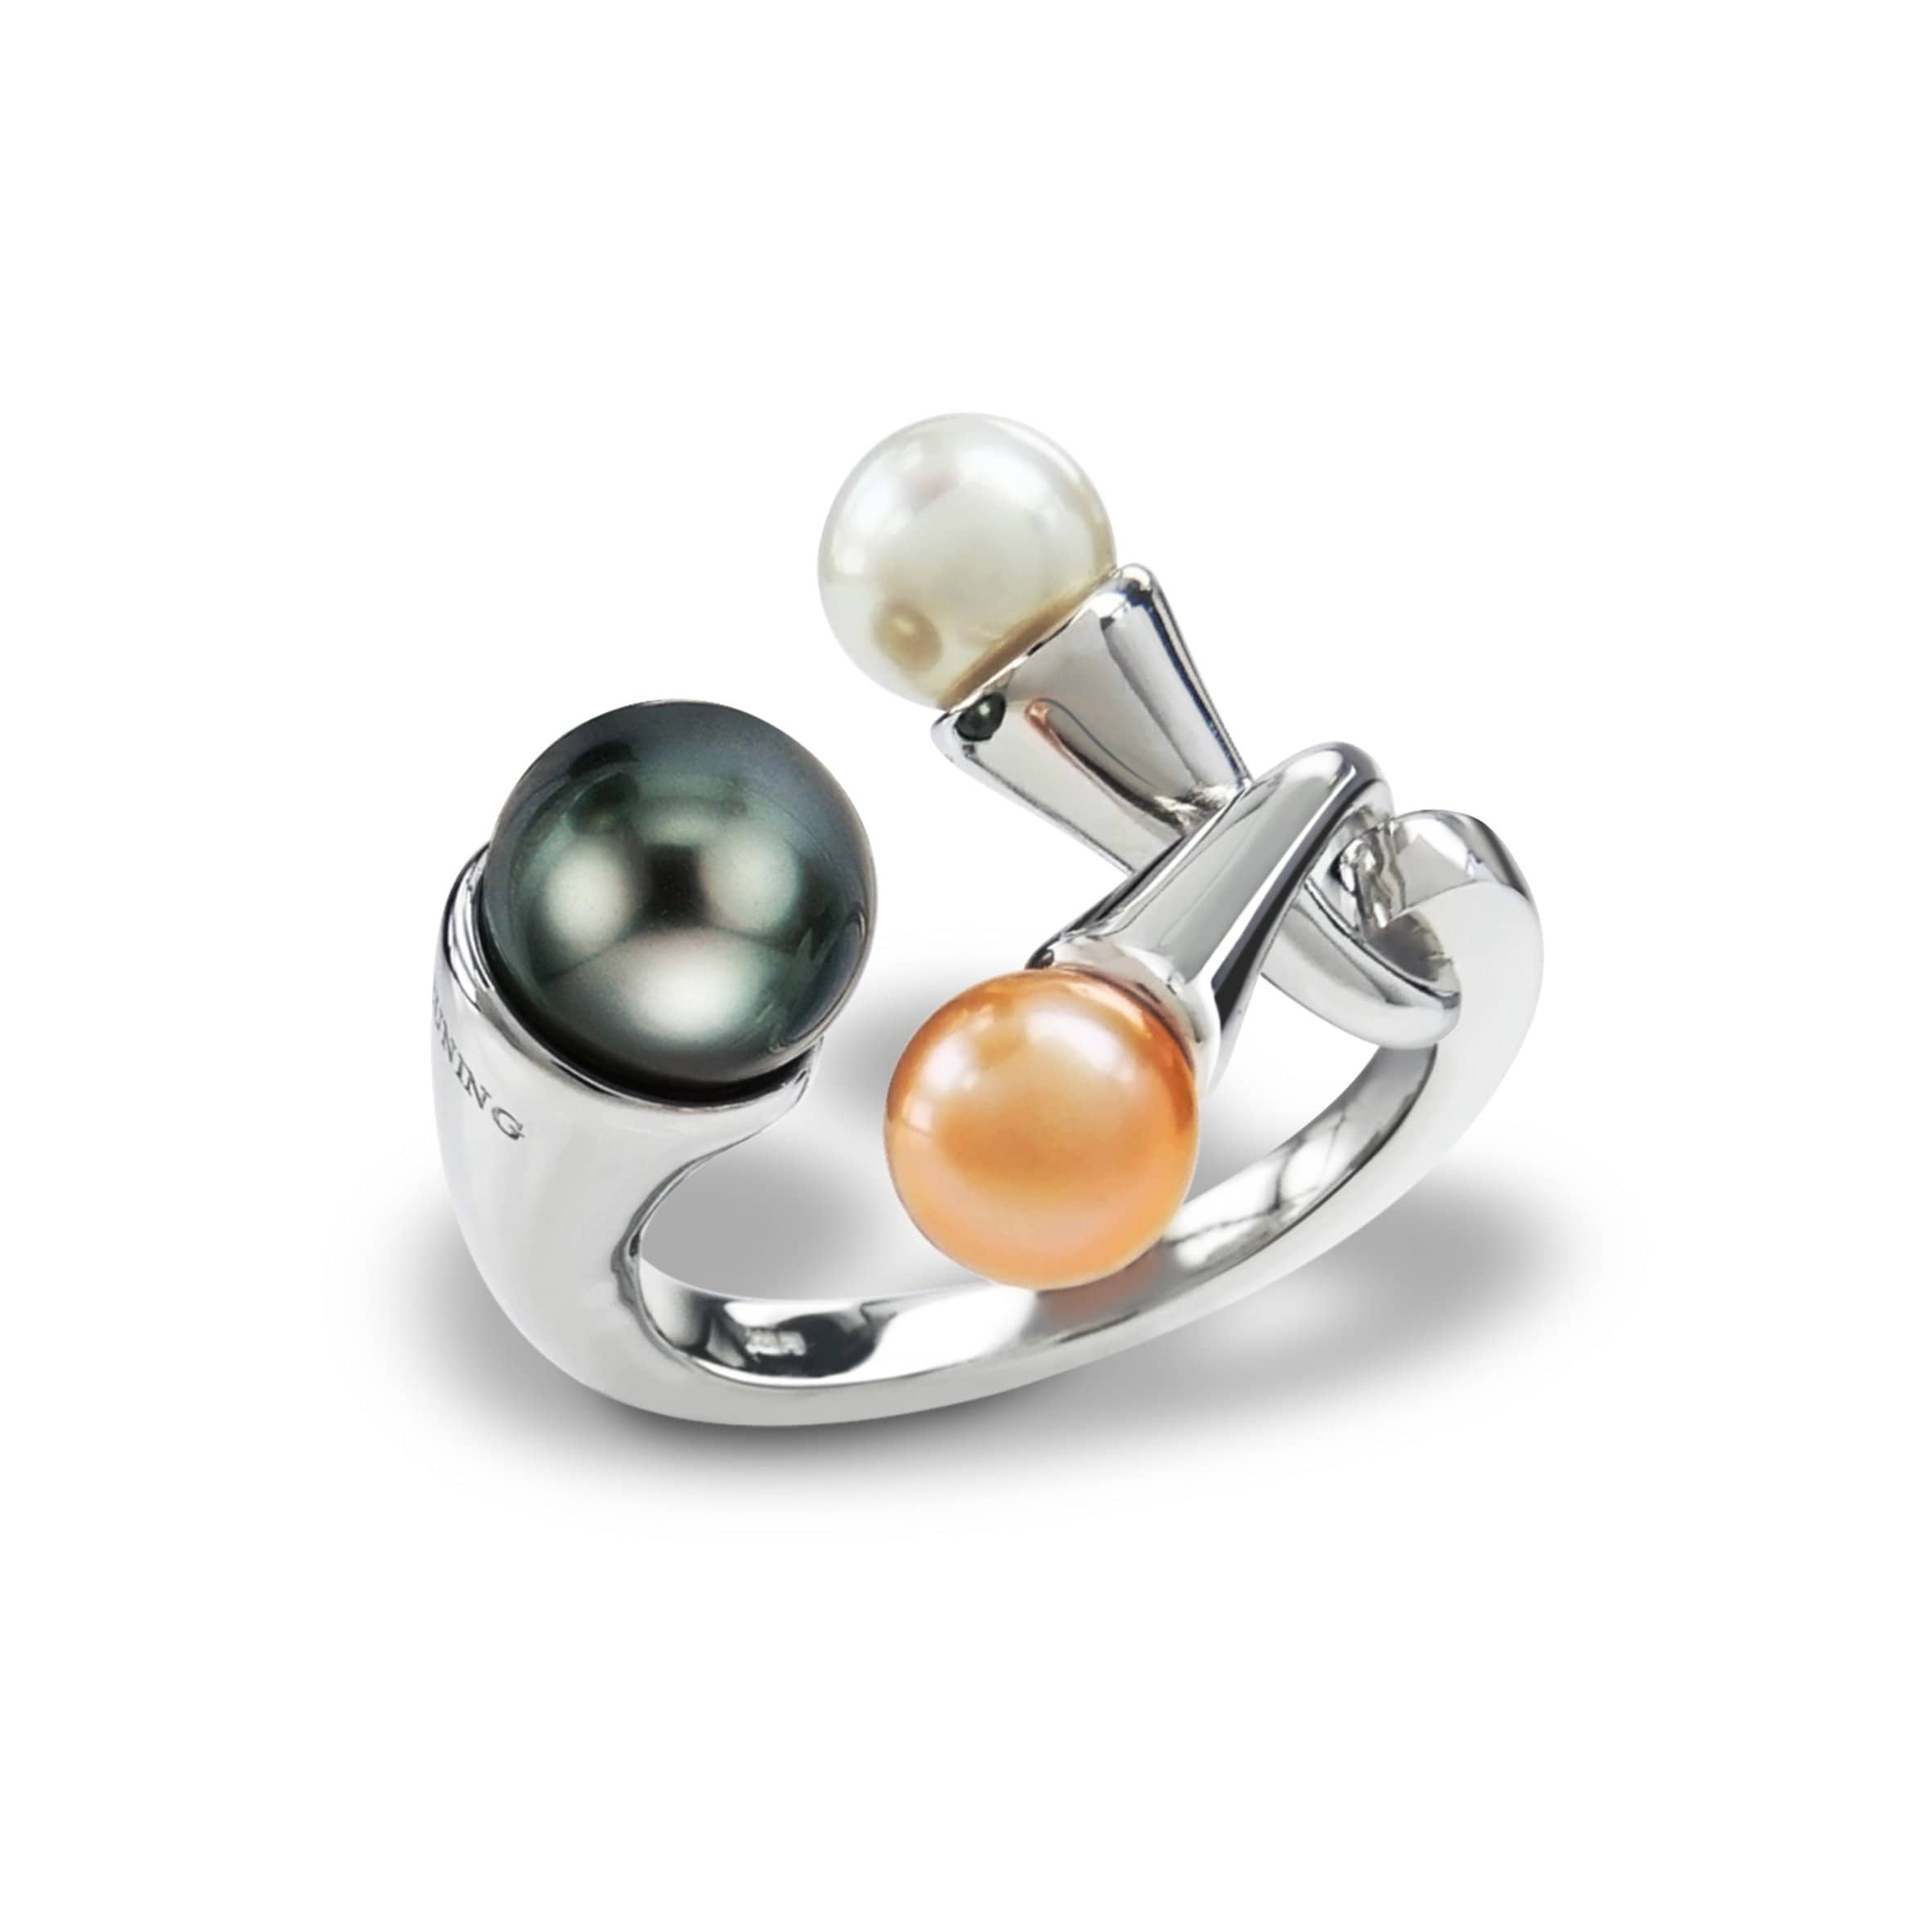 Sterling Silver Chinese Cultured Pearl Dark Grey Ring - 43/00634-Breuning-Renee Taylor Gallery